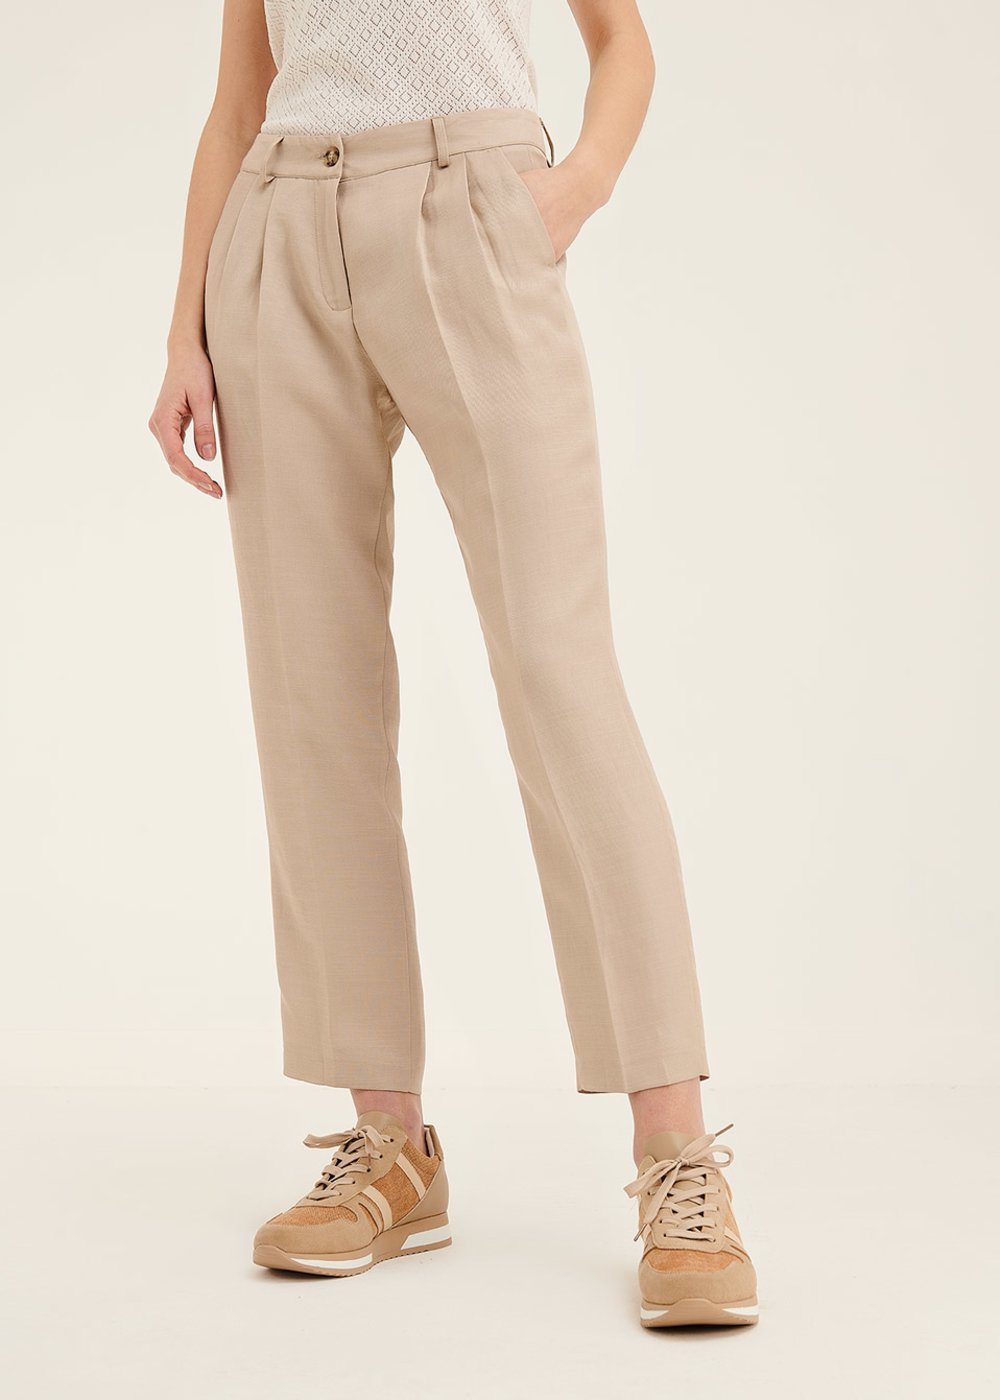 Pantalone Gigi in viscosa con pinces - Safari - Donna